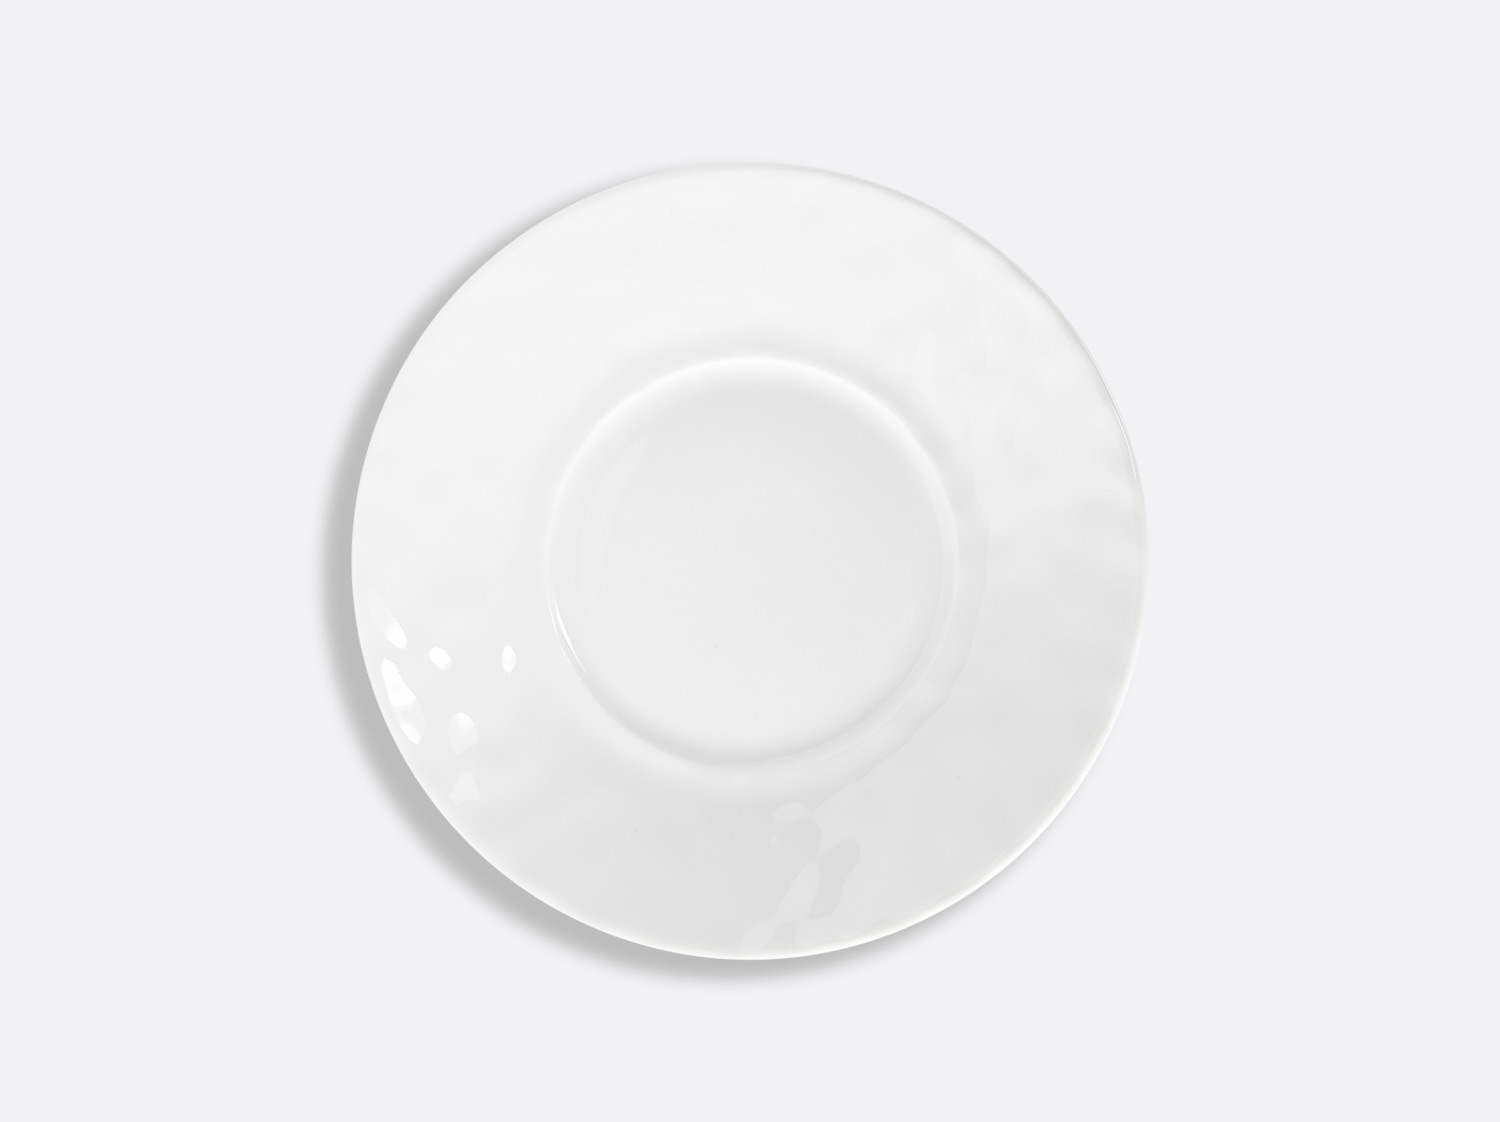 "China Plate 6.5"" of the collection Empreinte 